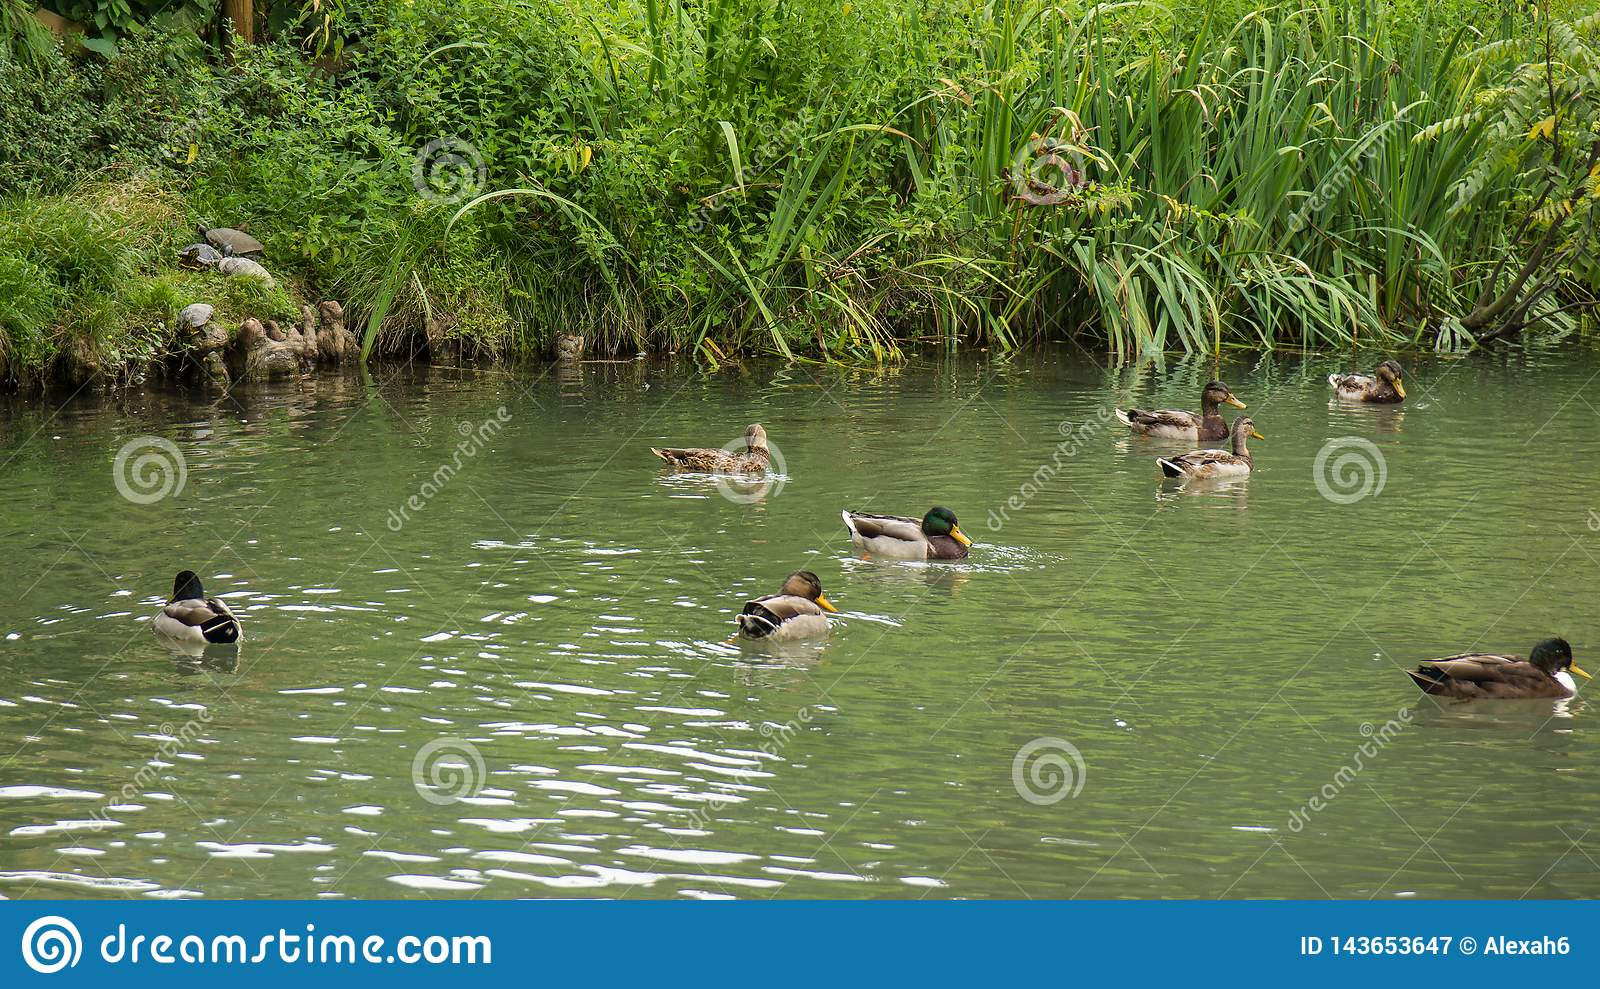 Many ducks swimming in pond